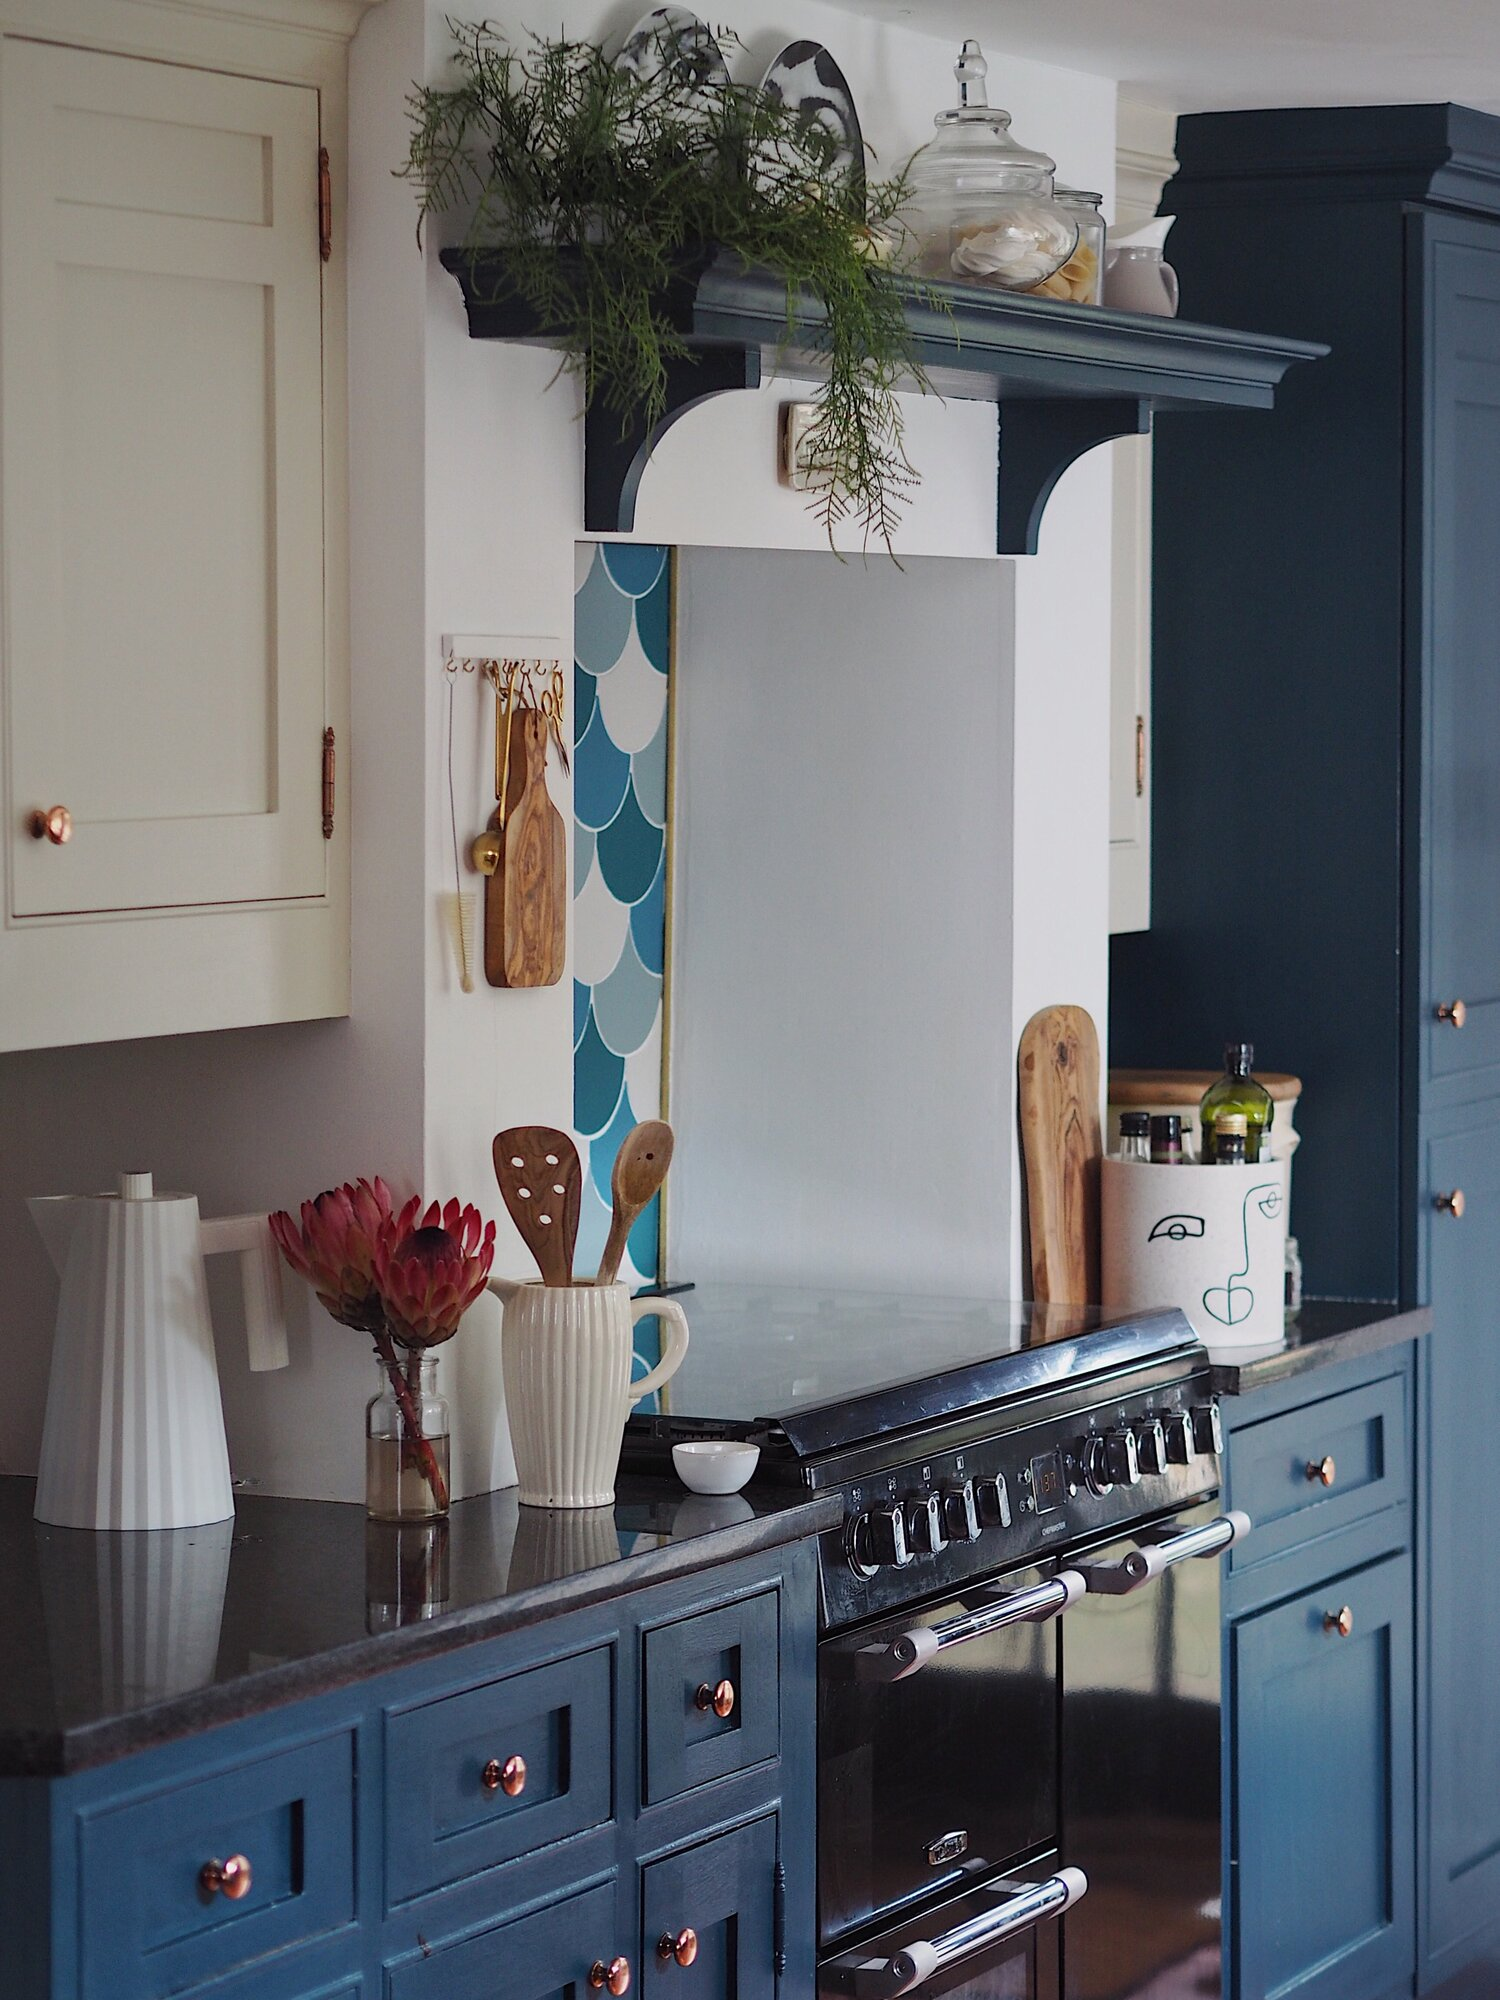 How To Paint Your Kitchen Cabinets Melanie Lissack Interiors